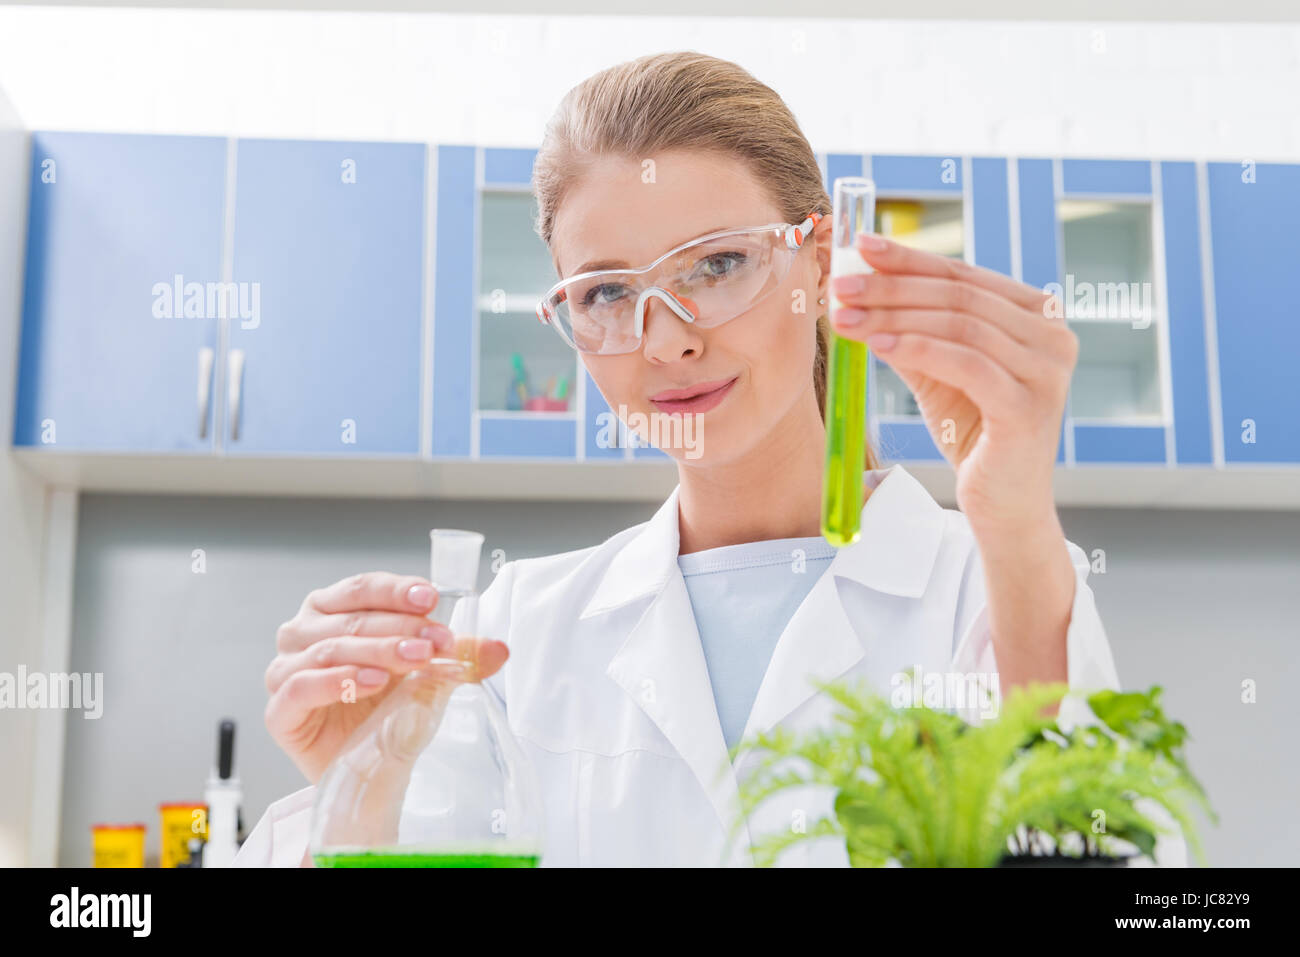 scientist holding tubes with reagents in laboratory looking at camera - Stock Image